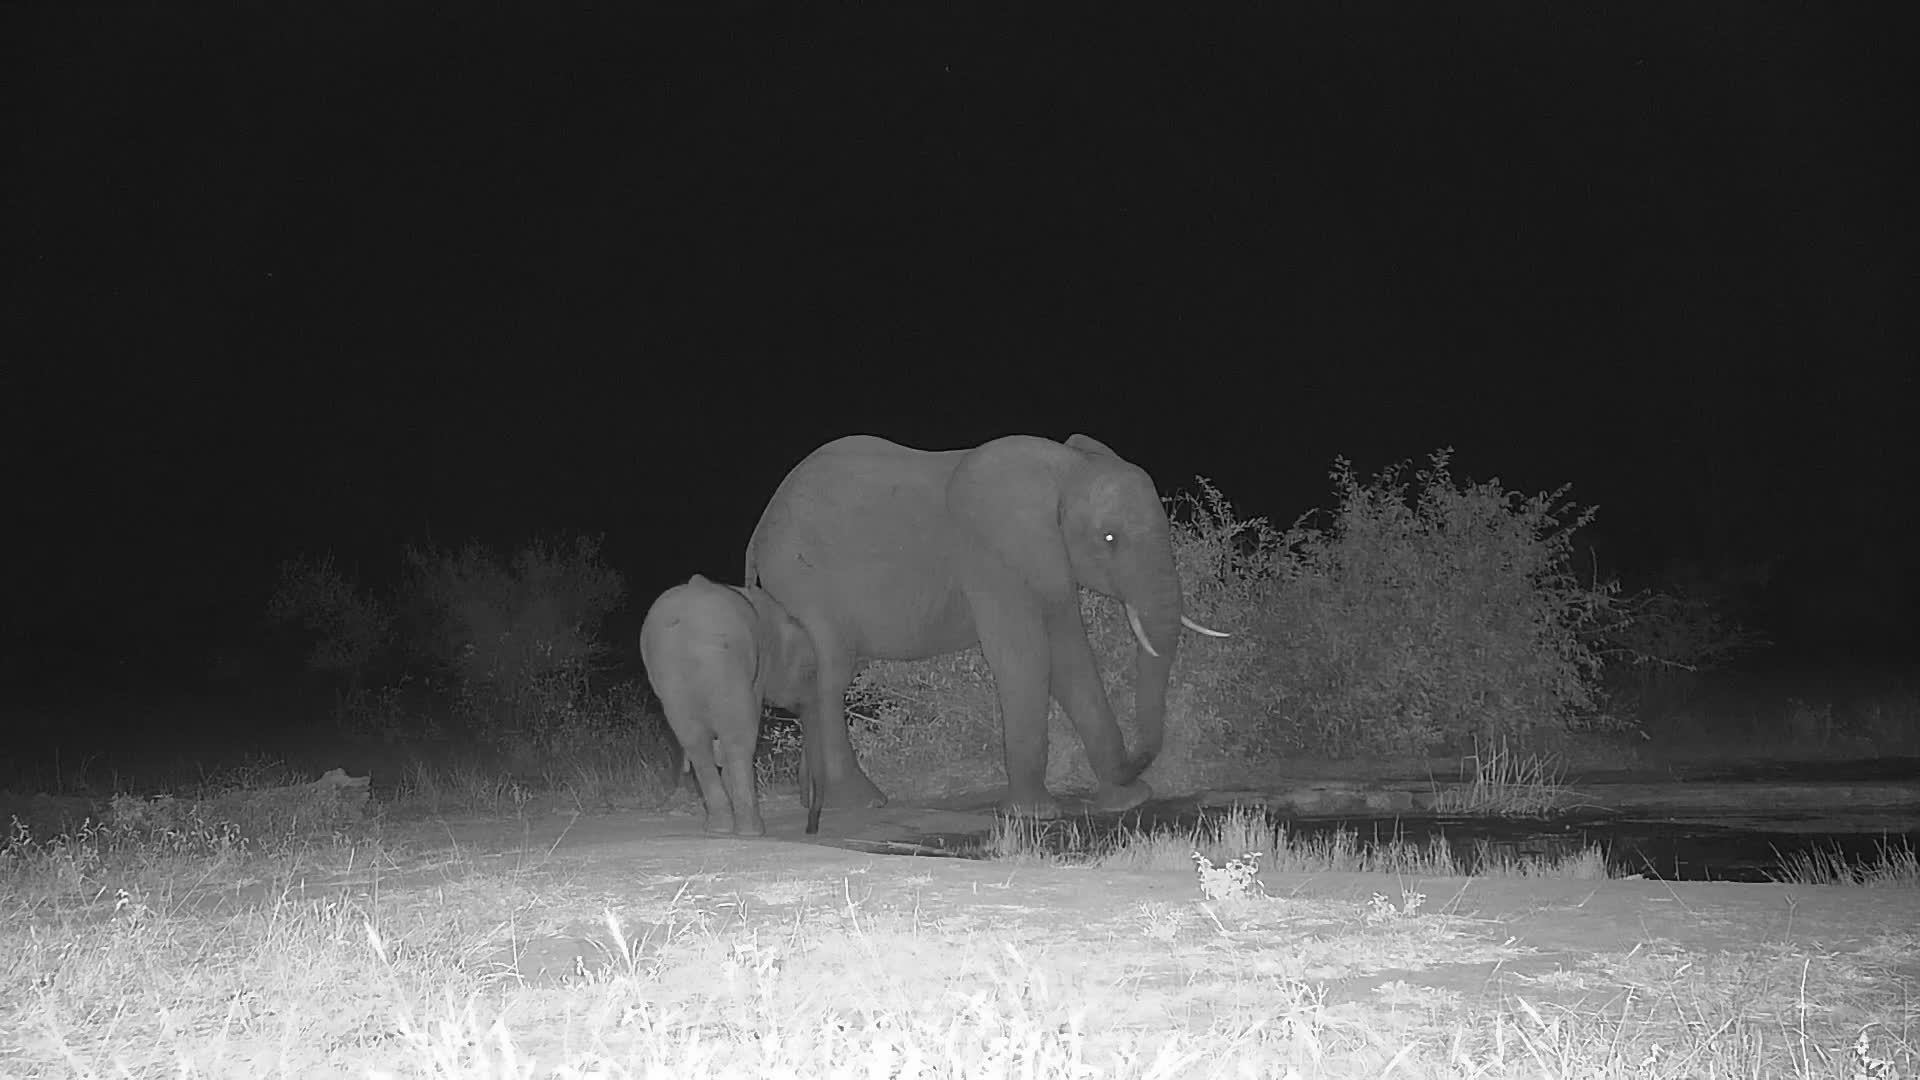 VIDEO: Elephants come for a quick drink and pose for the camera